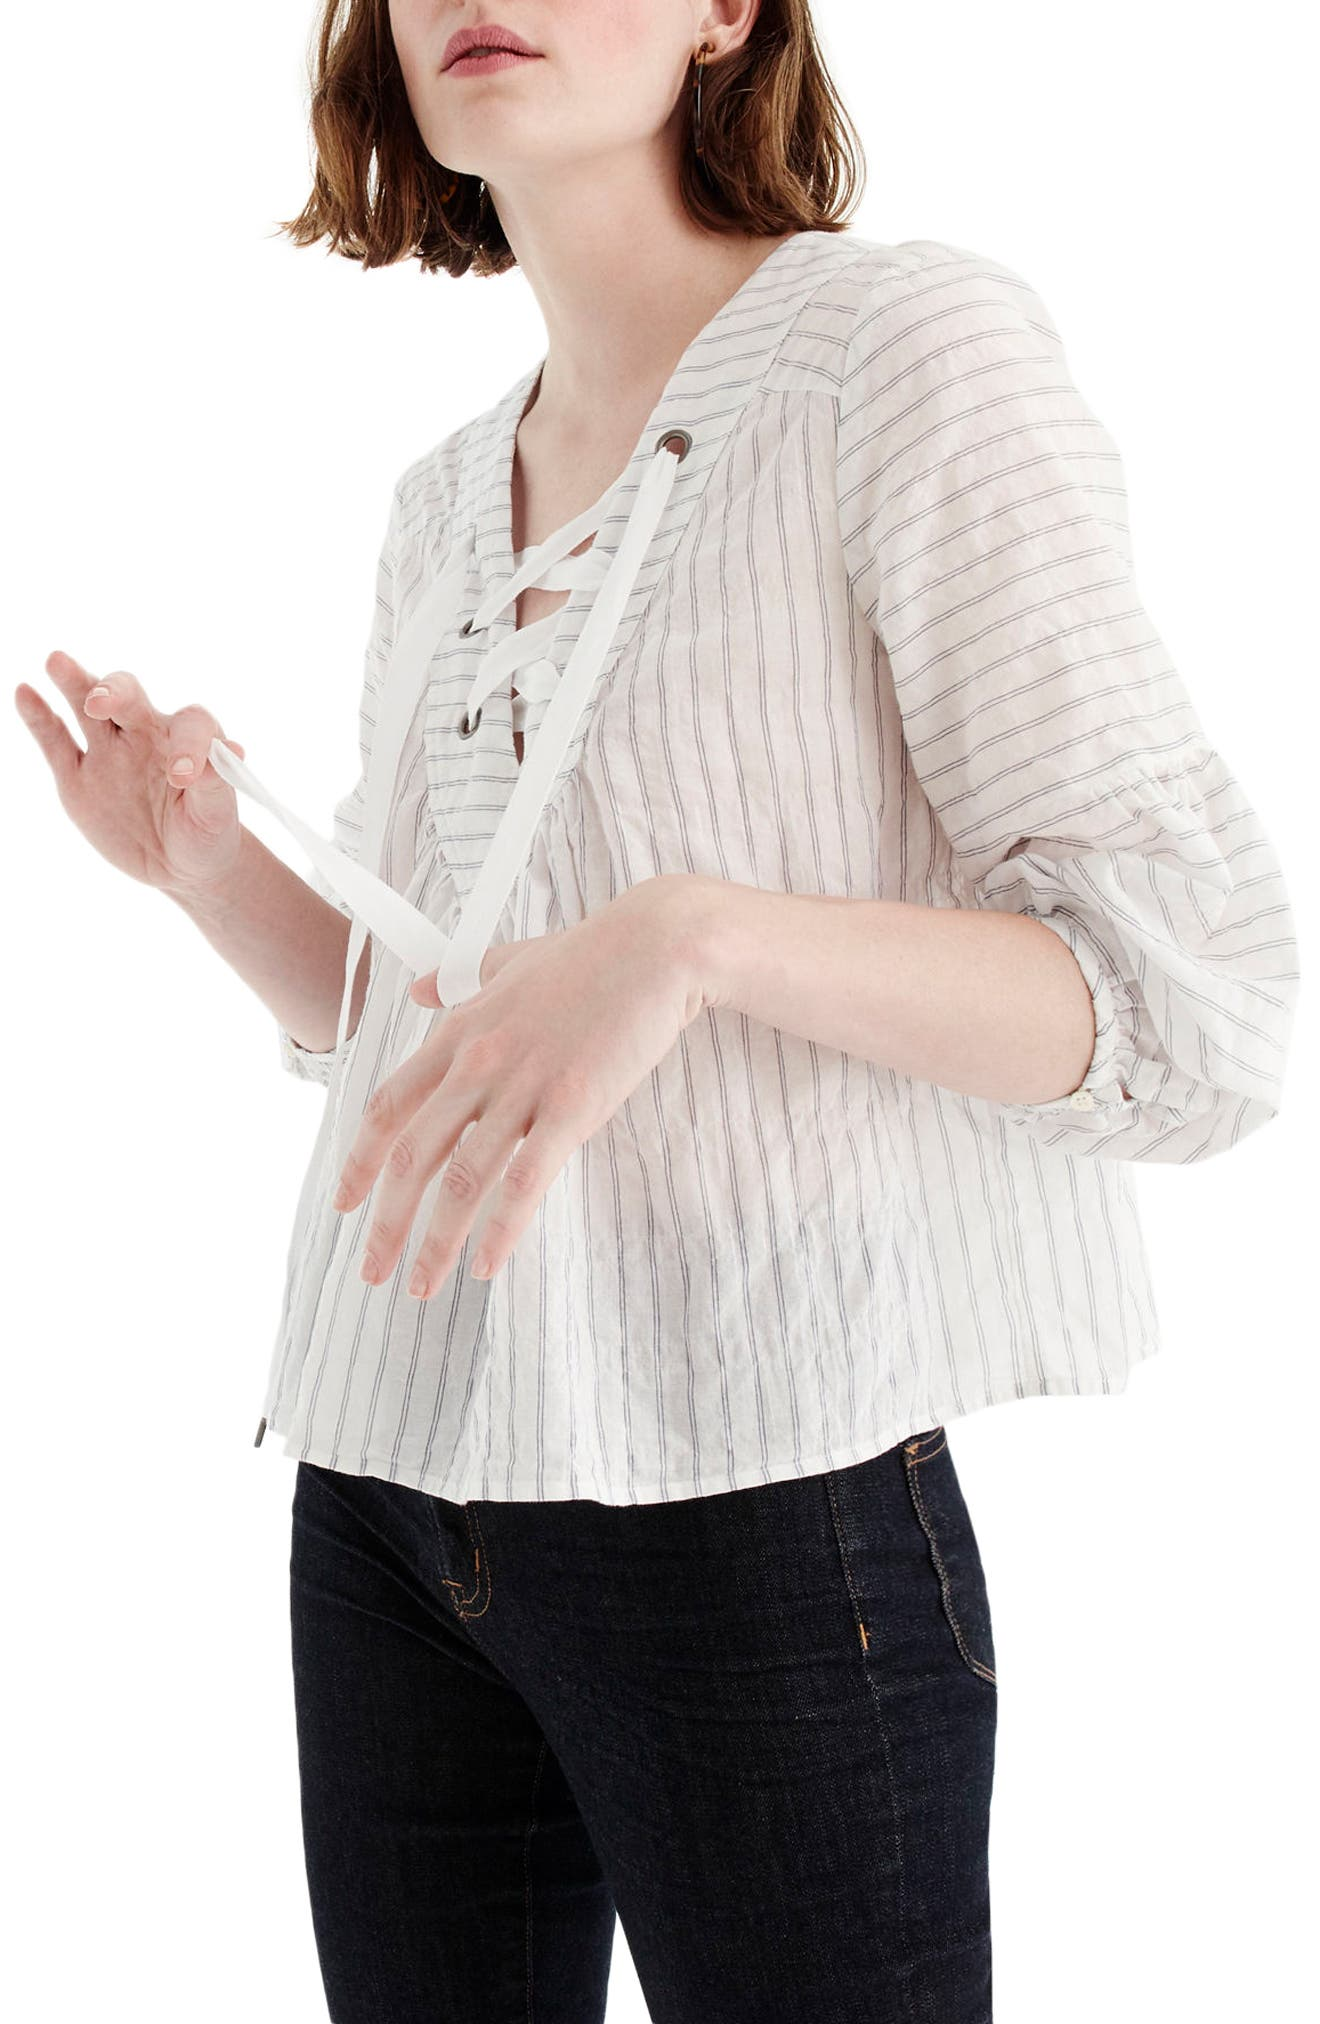 Alternate Image 1 Selected - J.Crew Lace-Up Stripe Cotton Top